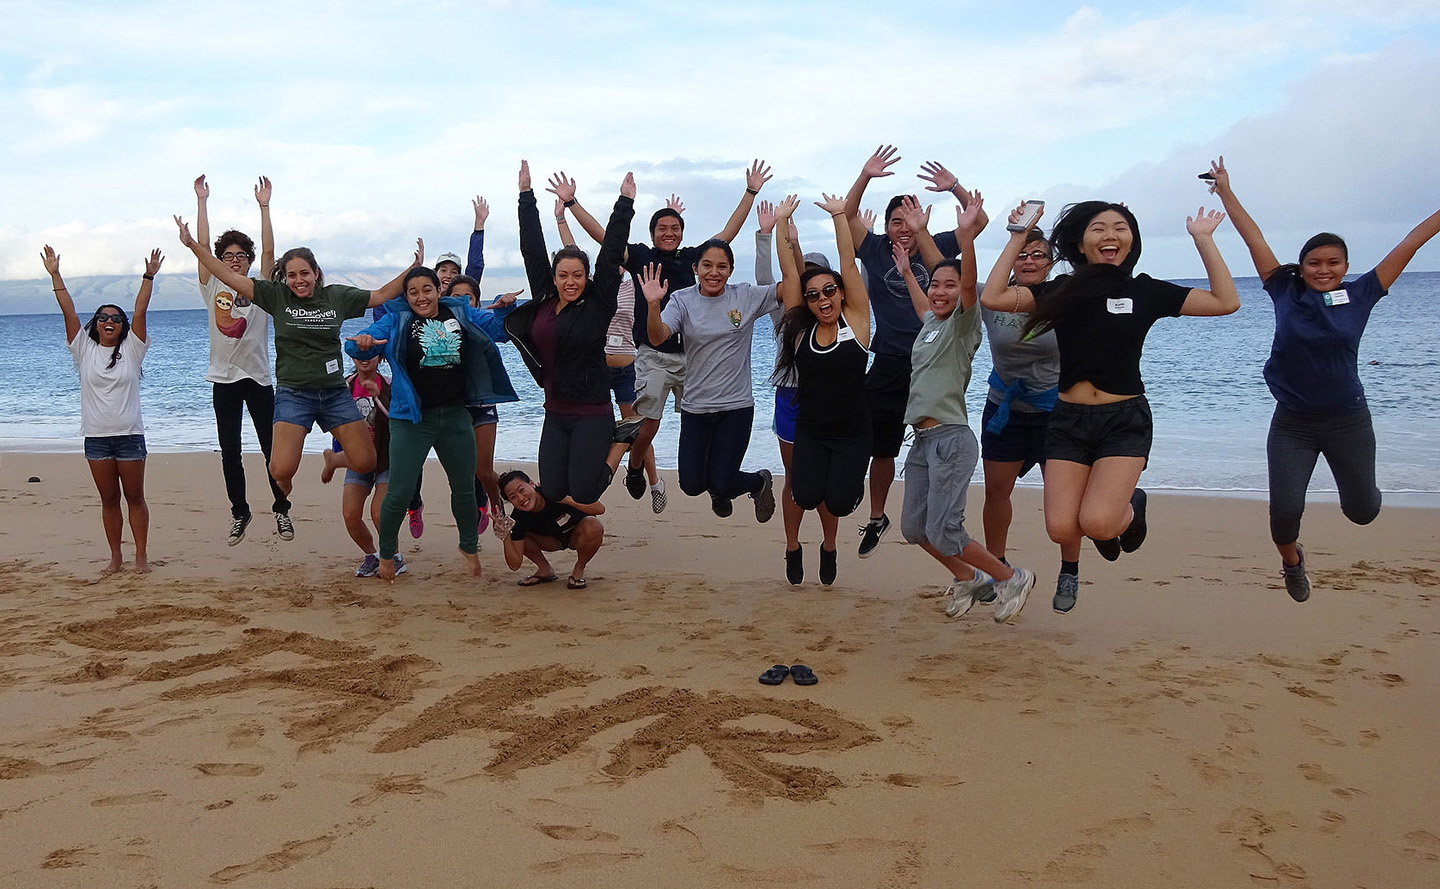 Group of CTAHR students jumping in the air at the beach.